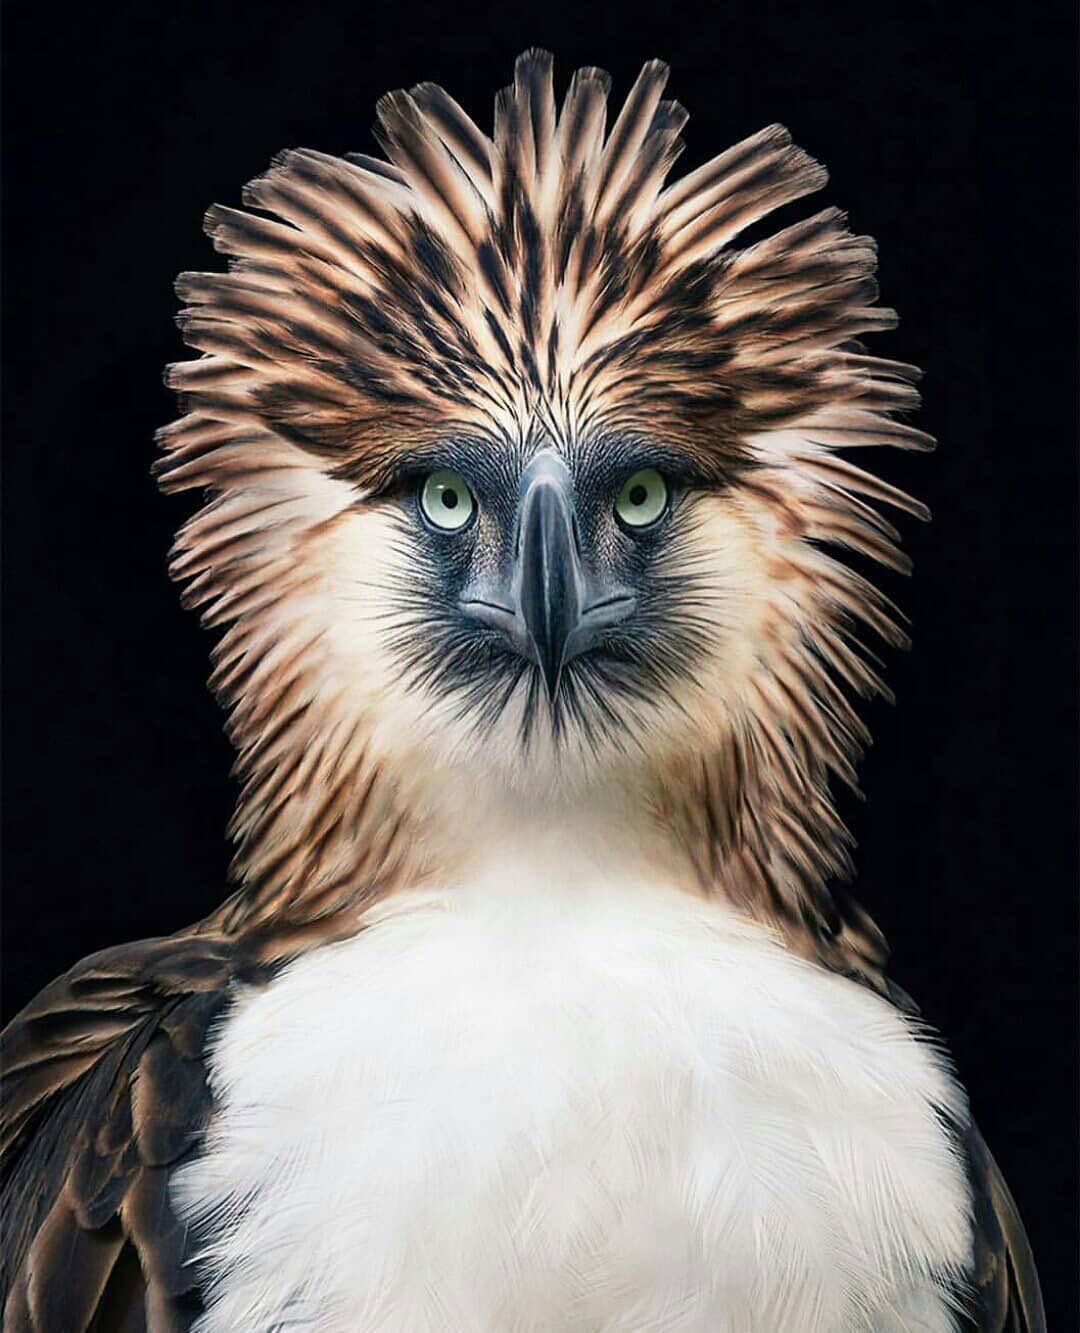 The endangered Philippine Eagle, one of the world's